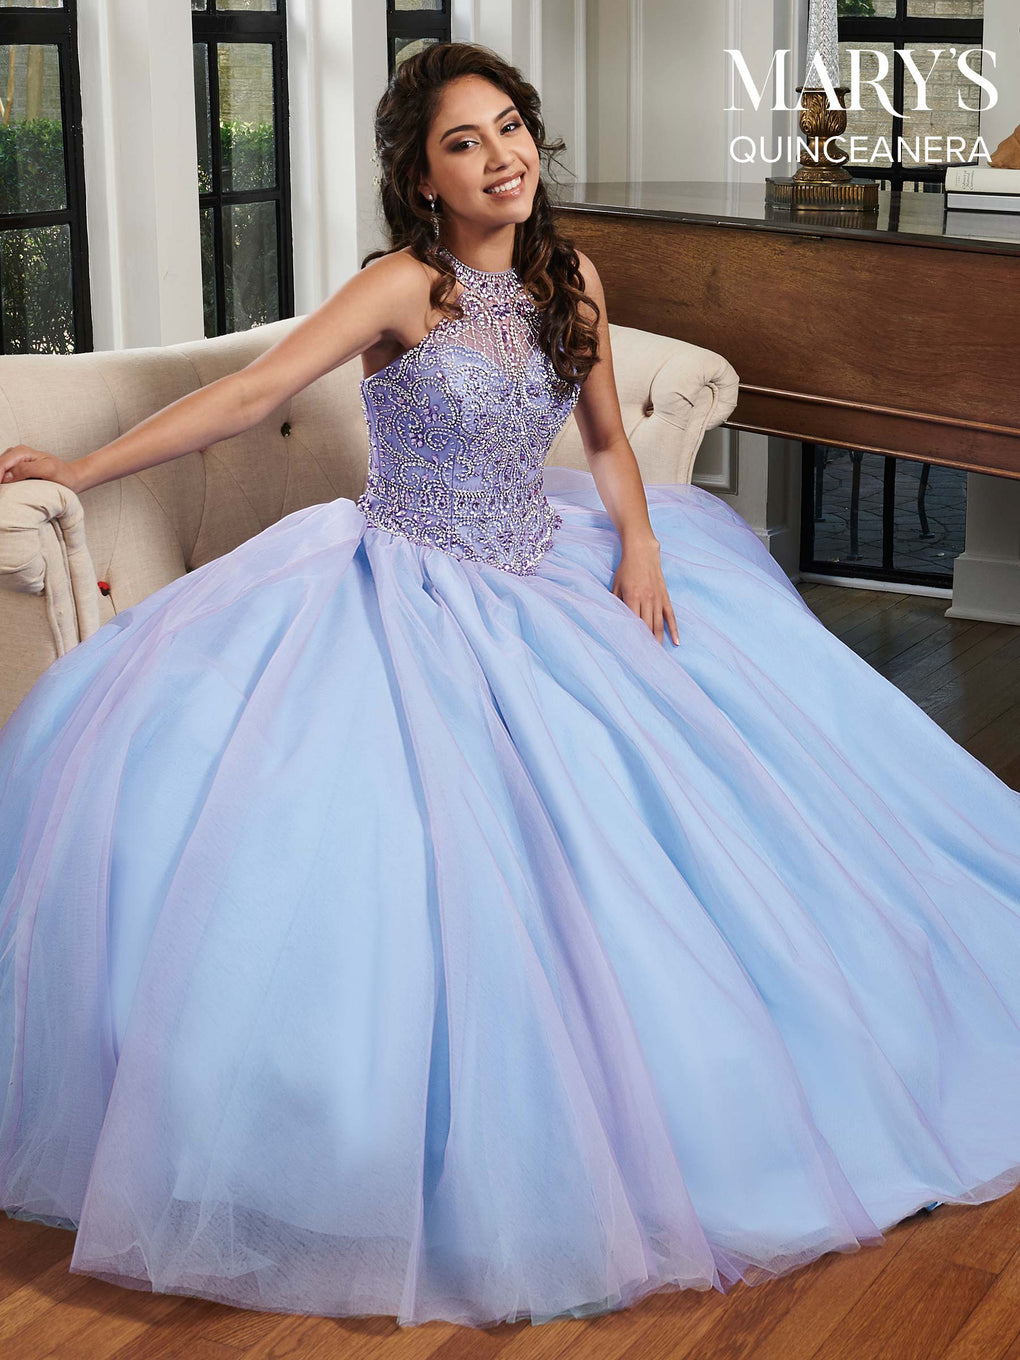 Marys Quinceanera Dresses in Cotton Candy, Sherbet, or White Color